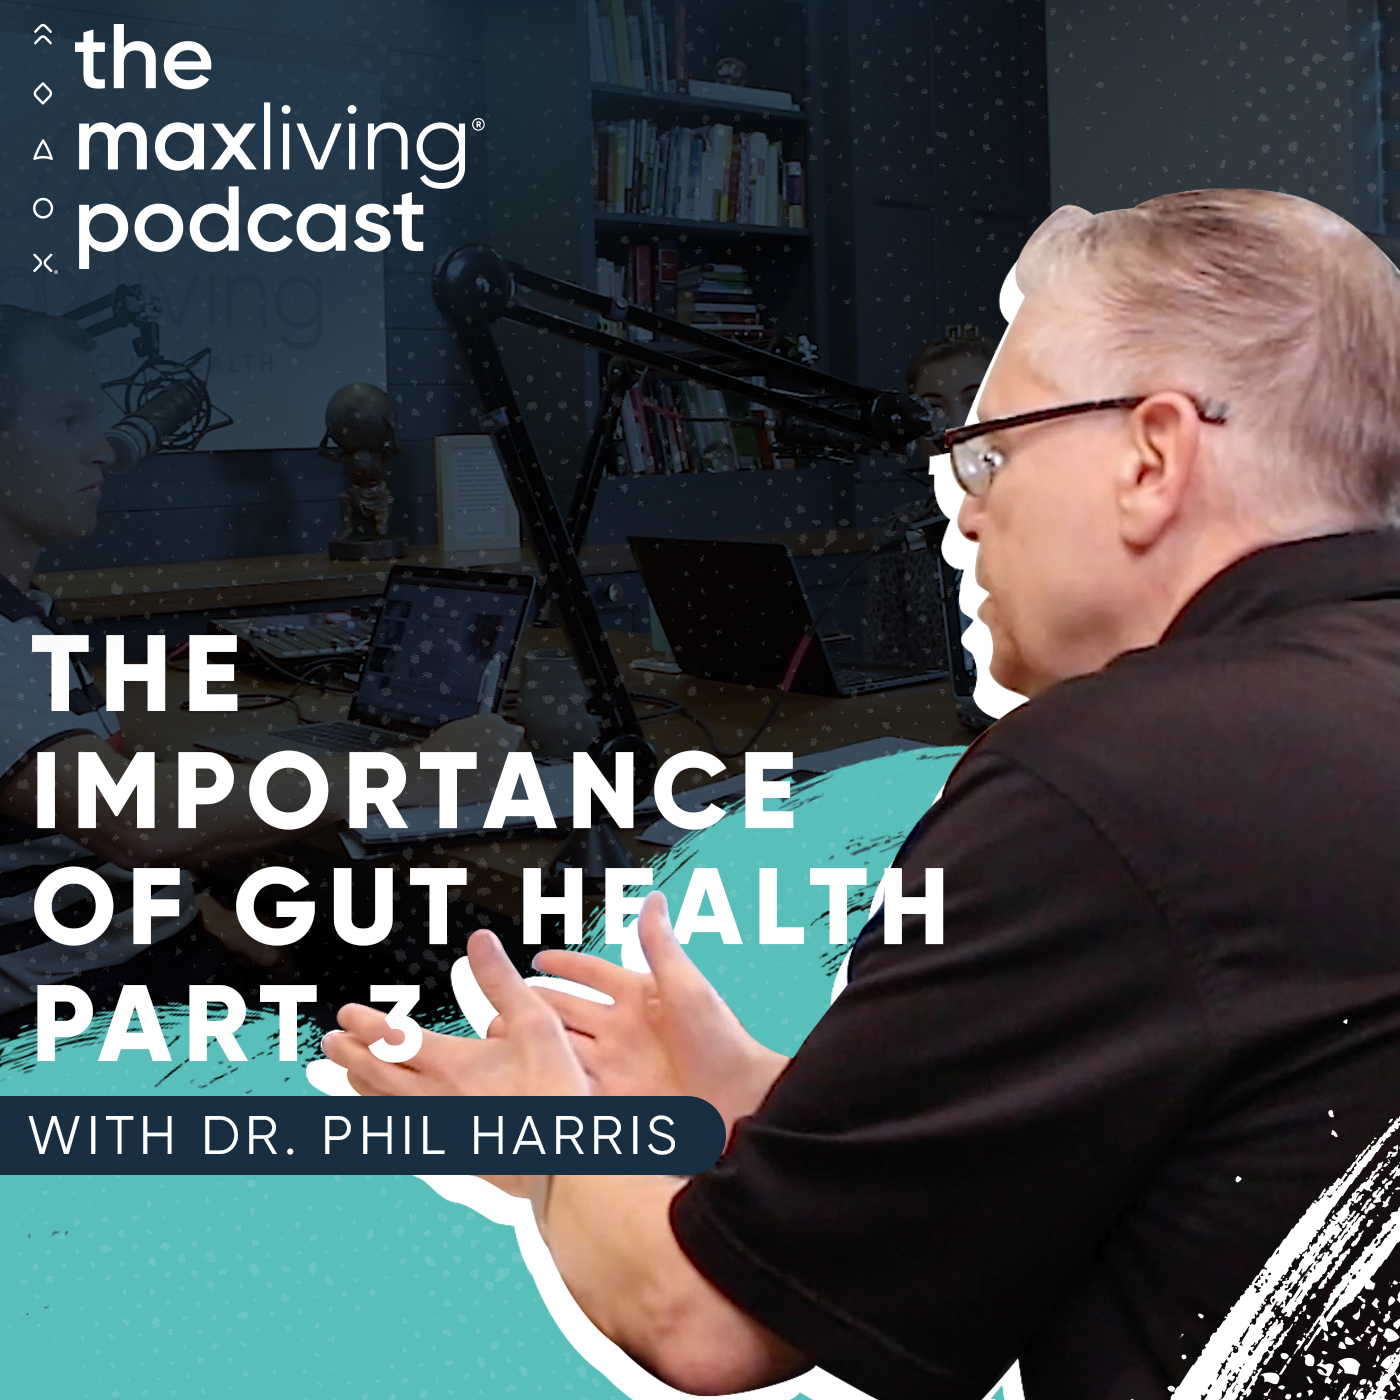 The Importance of Gut Health Part 3